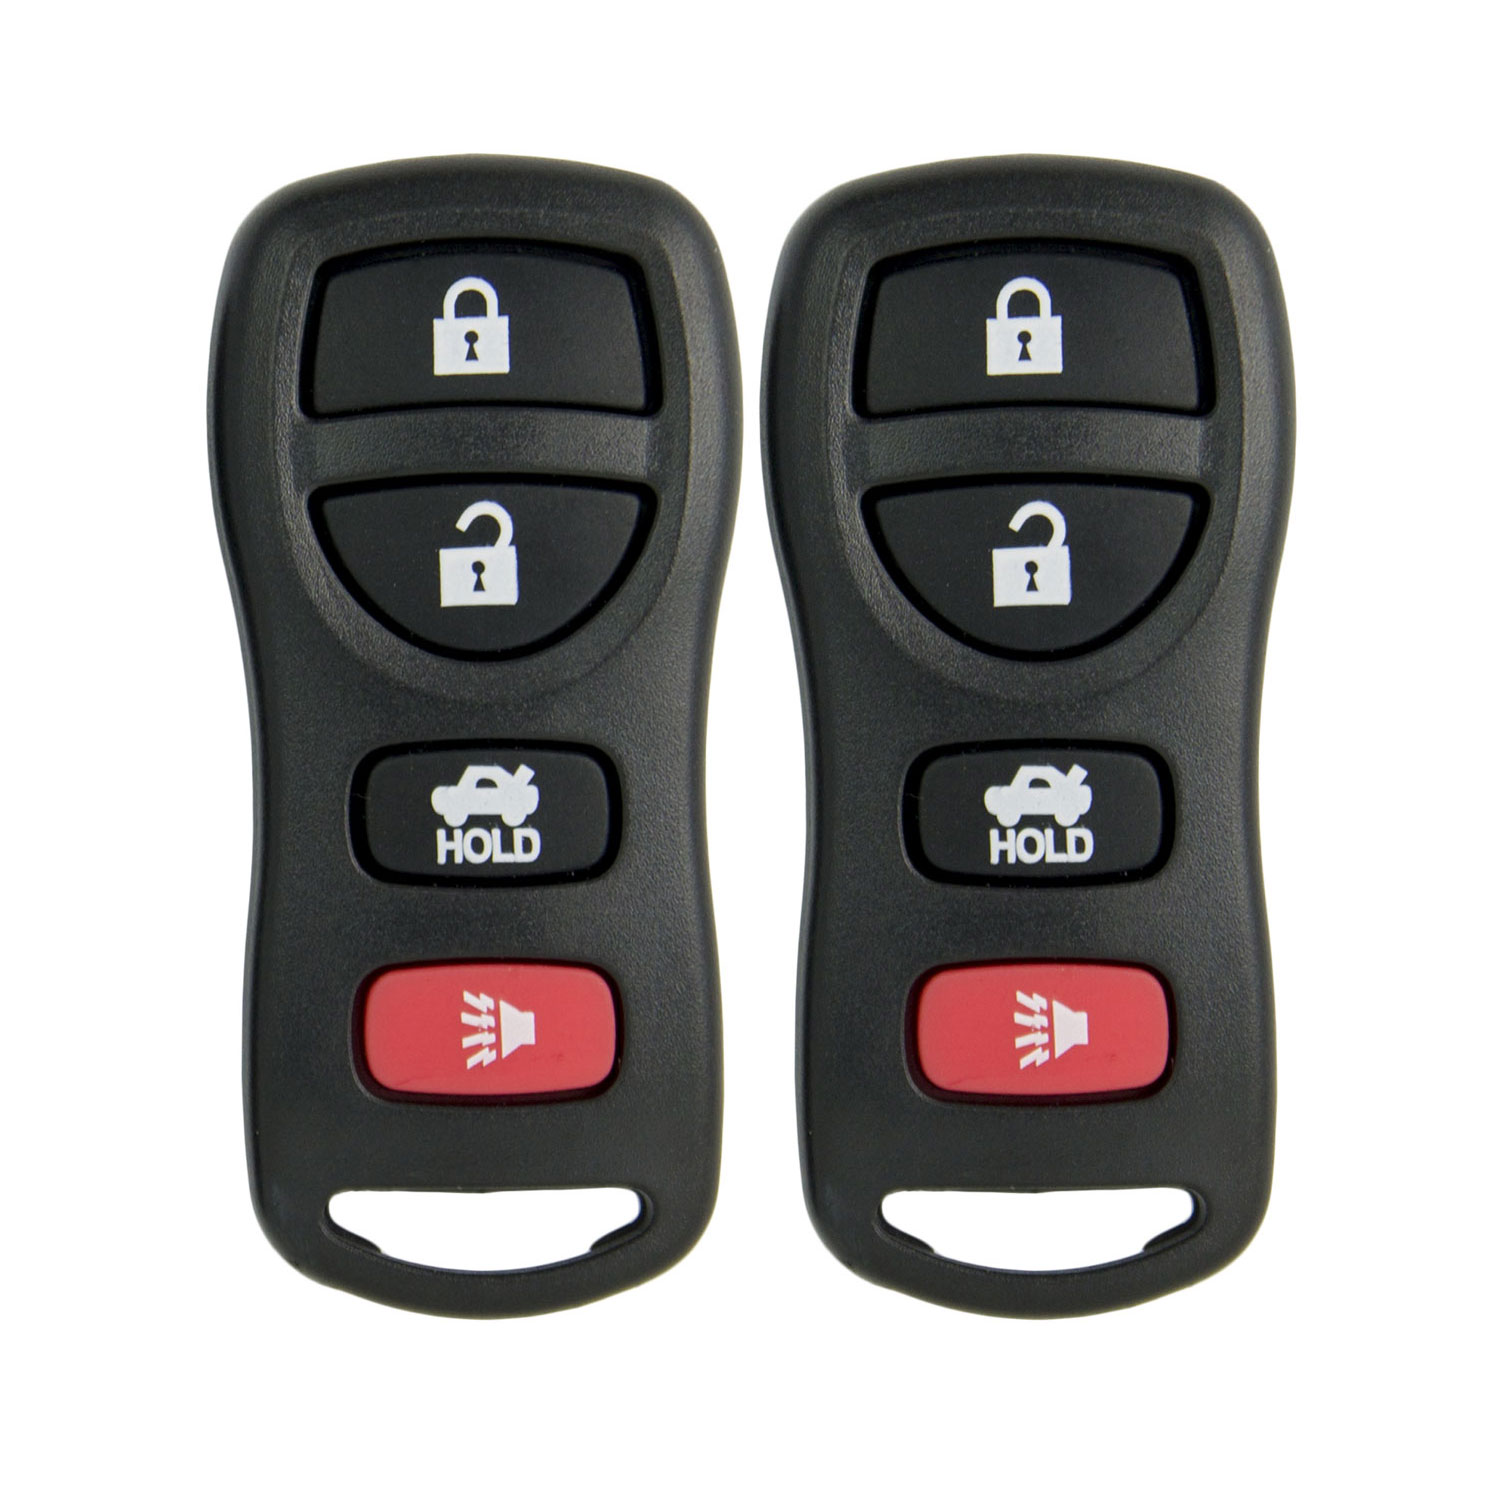 Keyless2Go New Replacement Shell Case and 4 Button Pad for Remote Key Fob with FCC KBRASTU15 - SHELL ONLY (2 Pack)